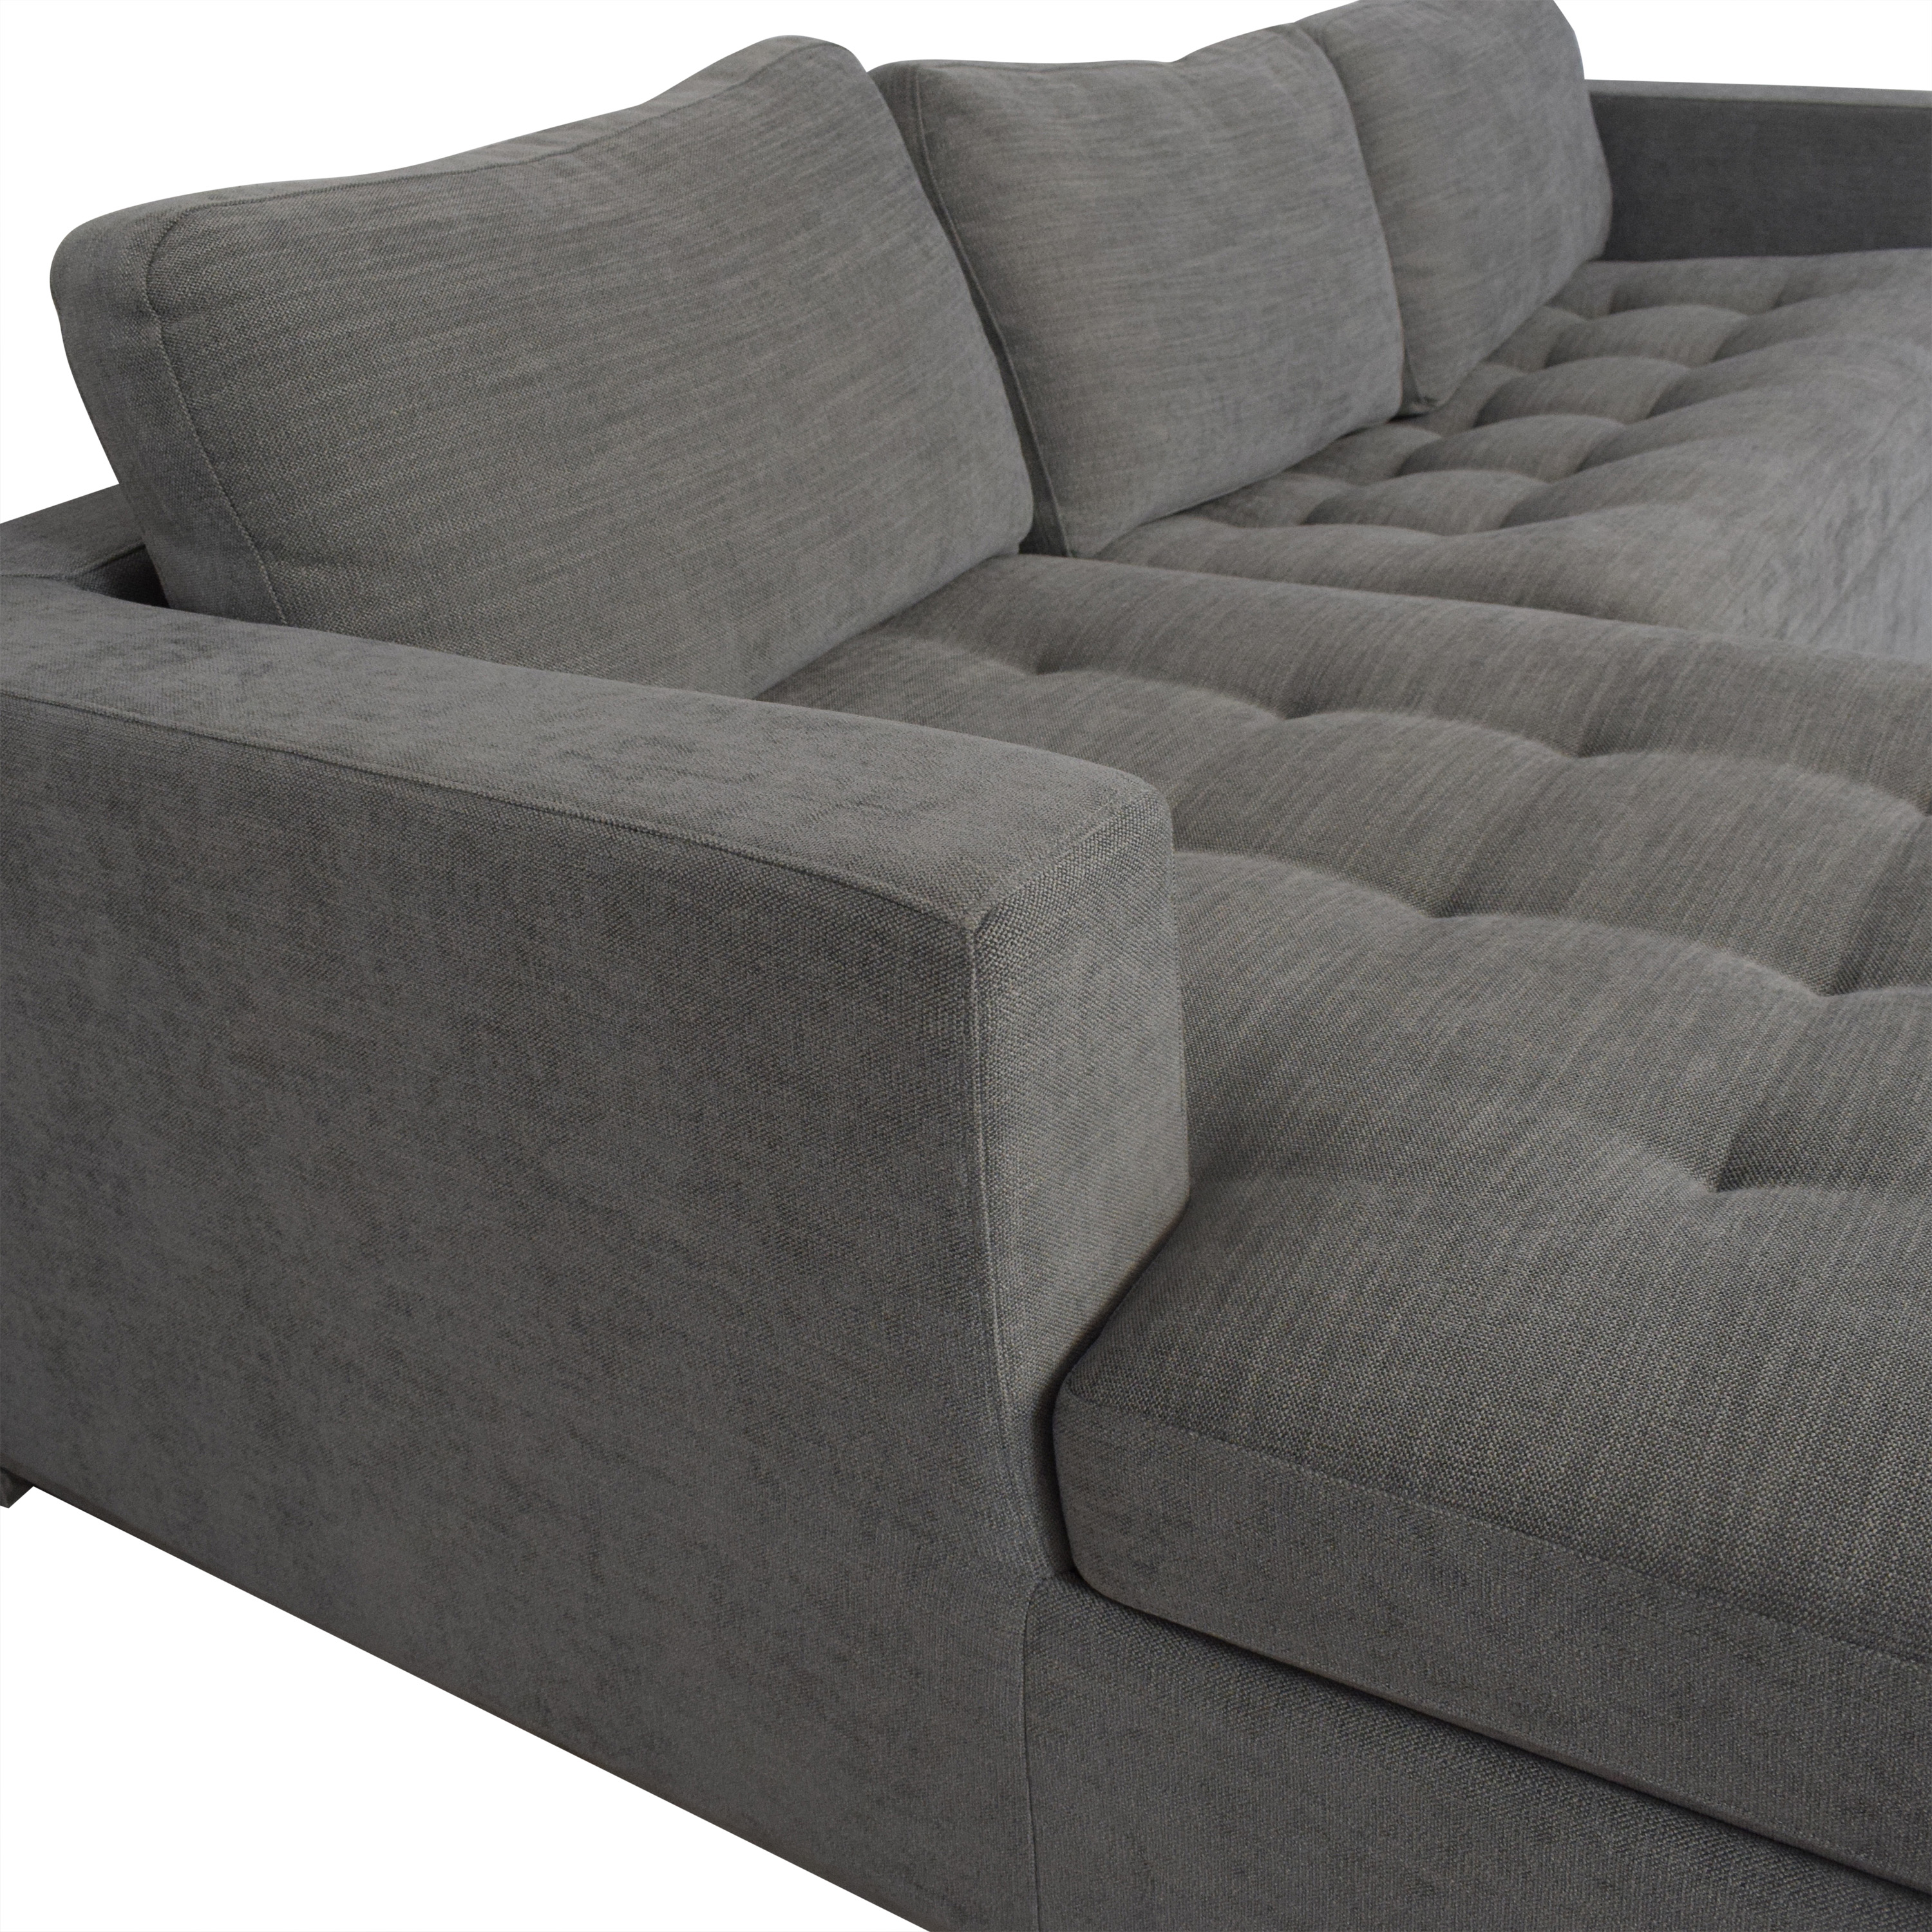 Article Soma Chaise Sofa Bed Article